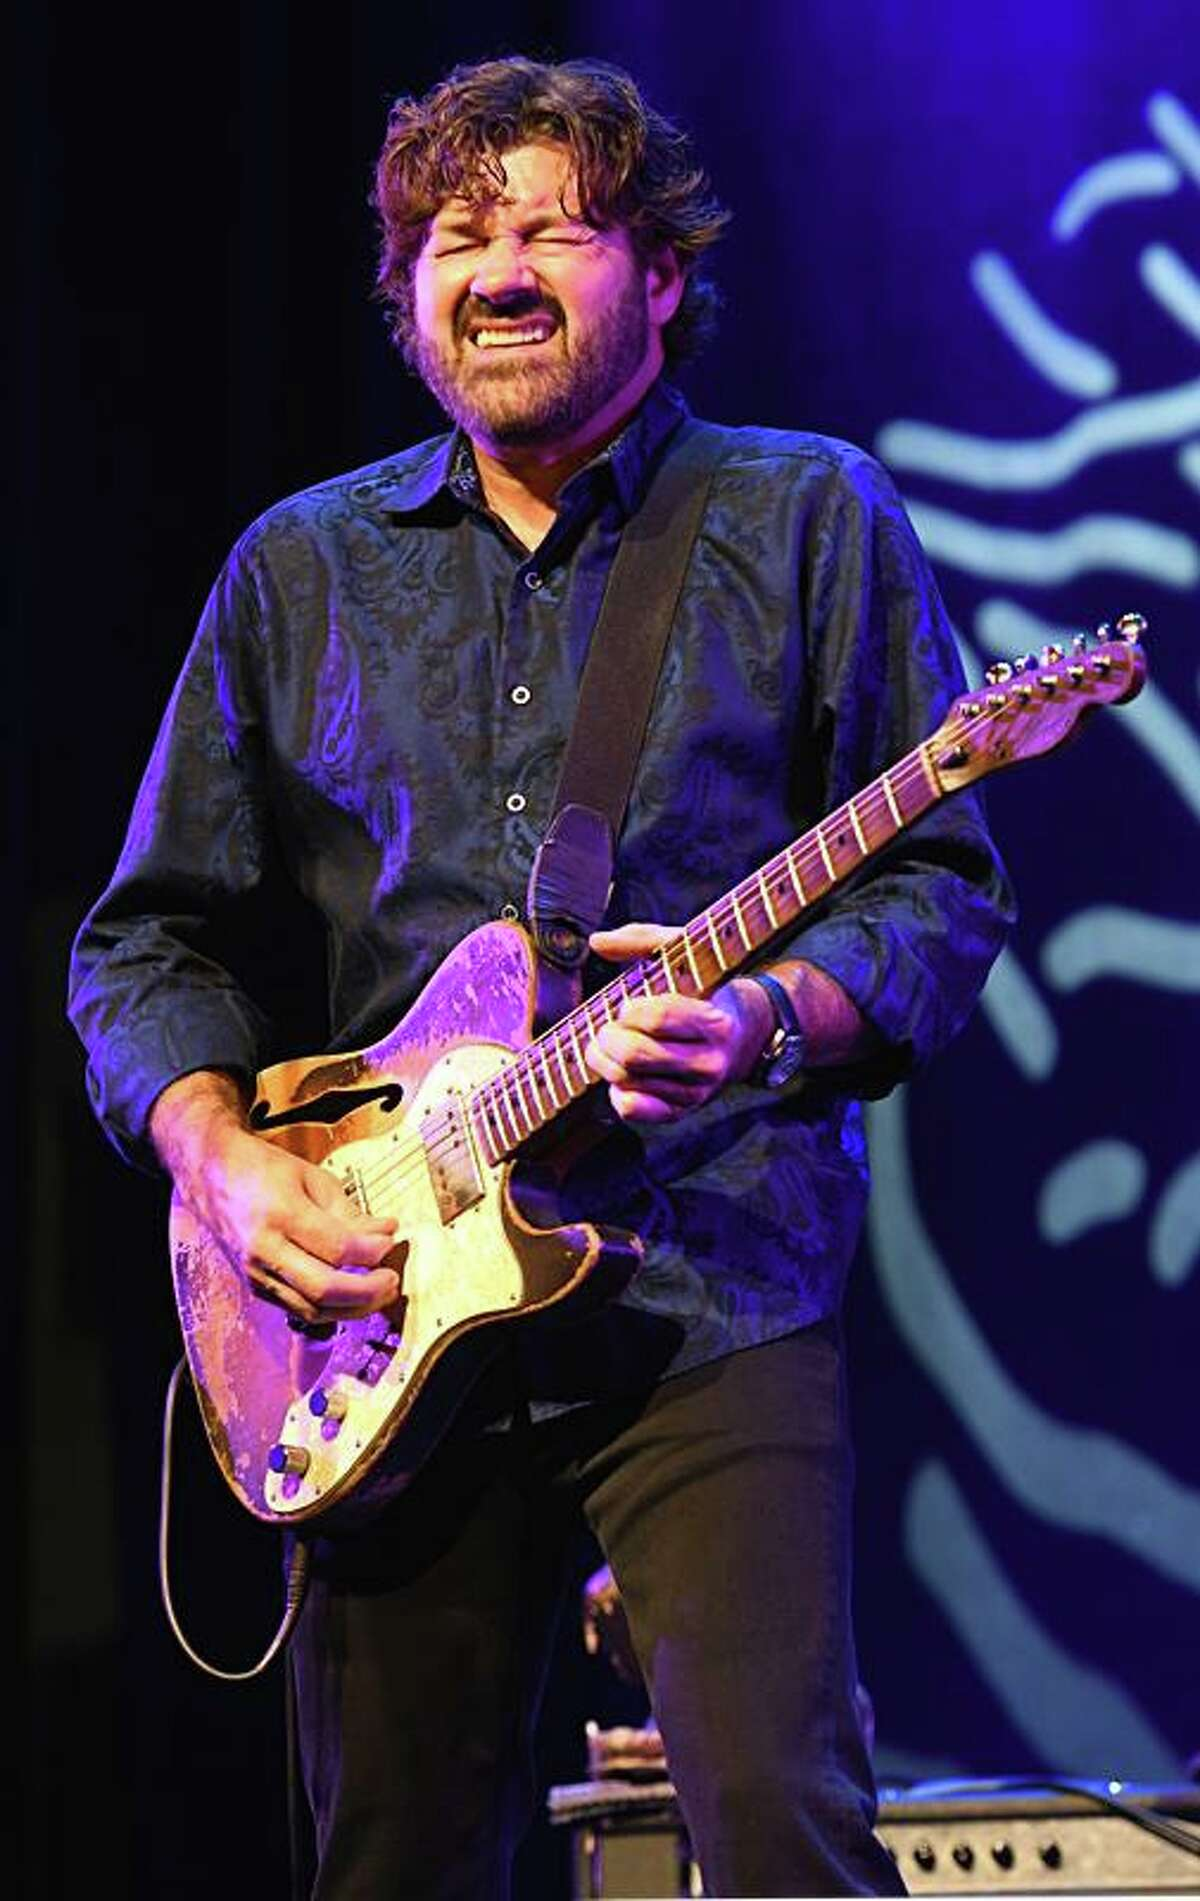 Blues guitarist, musician, and singer Tab Benoit is shown performingto a sold out crowd at the Katharine Hepburn Cultural Arts center in Old Saybrook Jan. 8. His awesome guitar playing combines a number of blues styles, primarily Delta Blues. In 2003, he formed